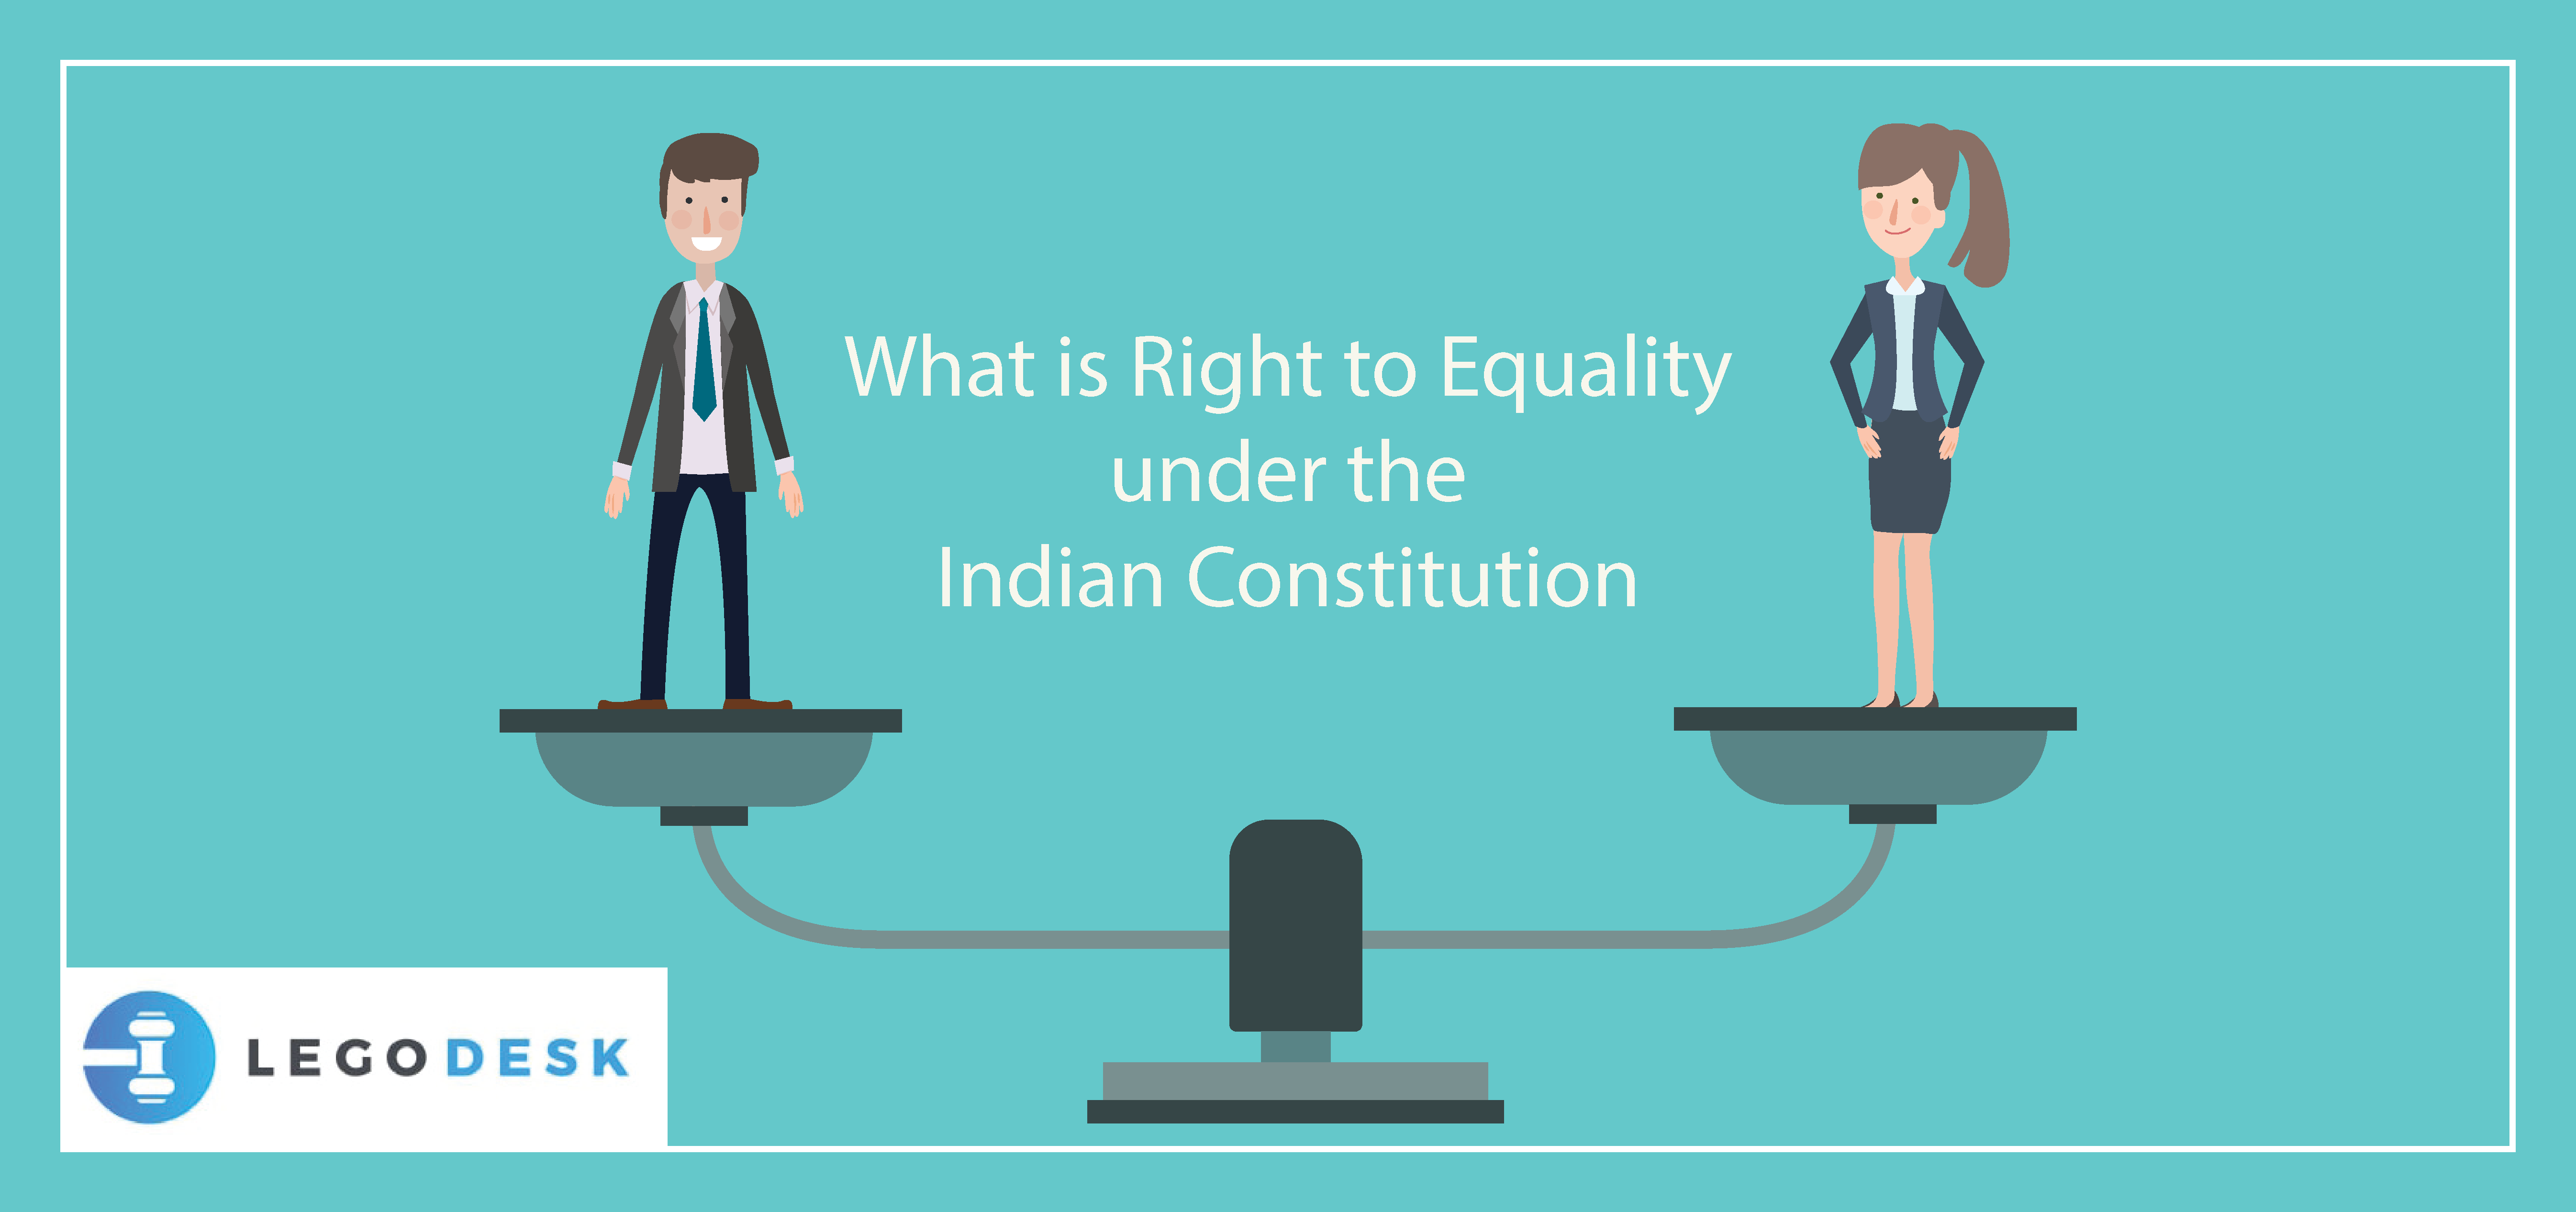 What is Right to Equality under the Indian Constitution